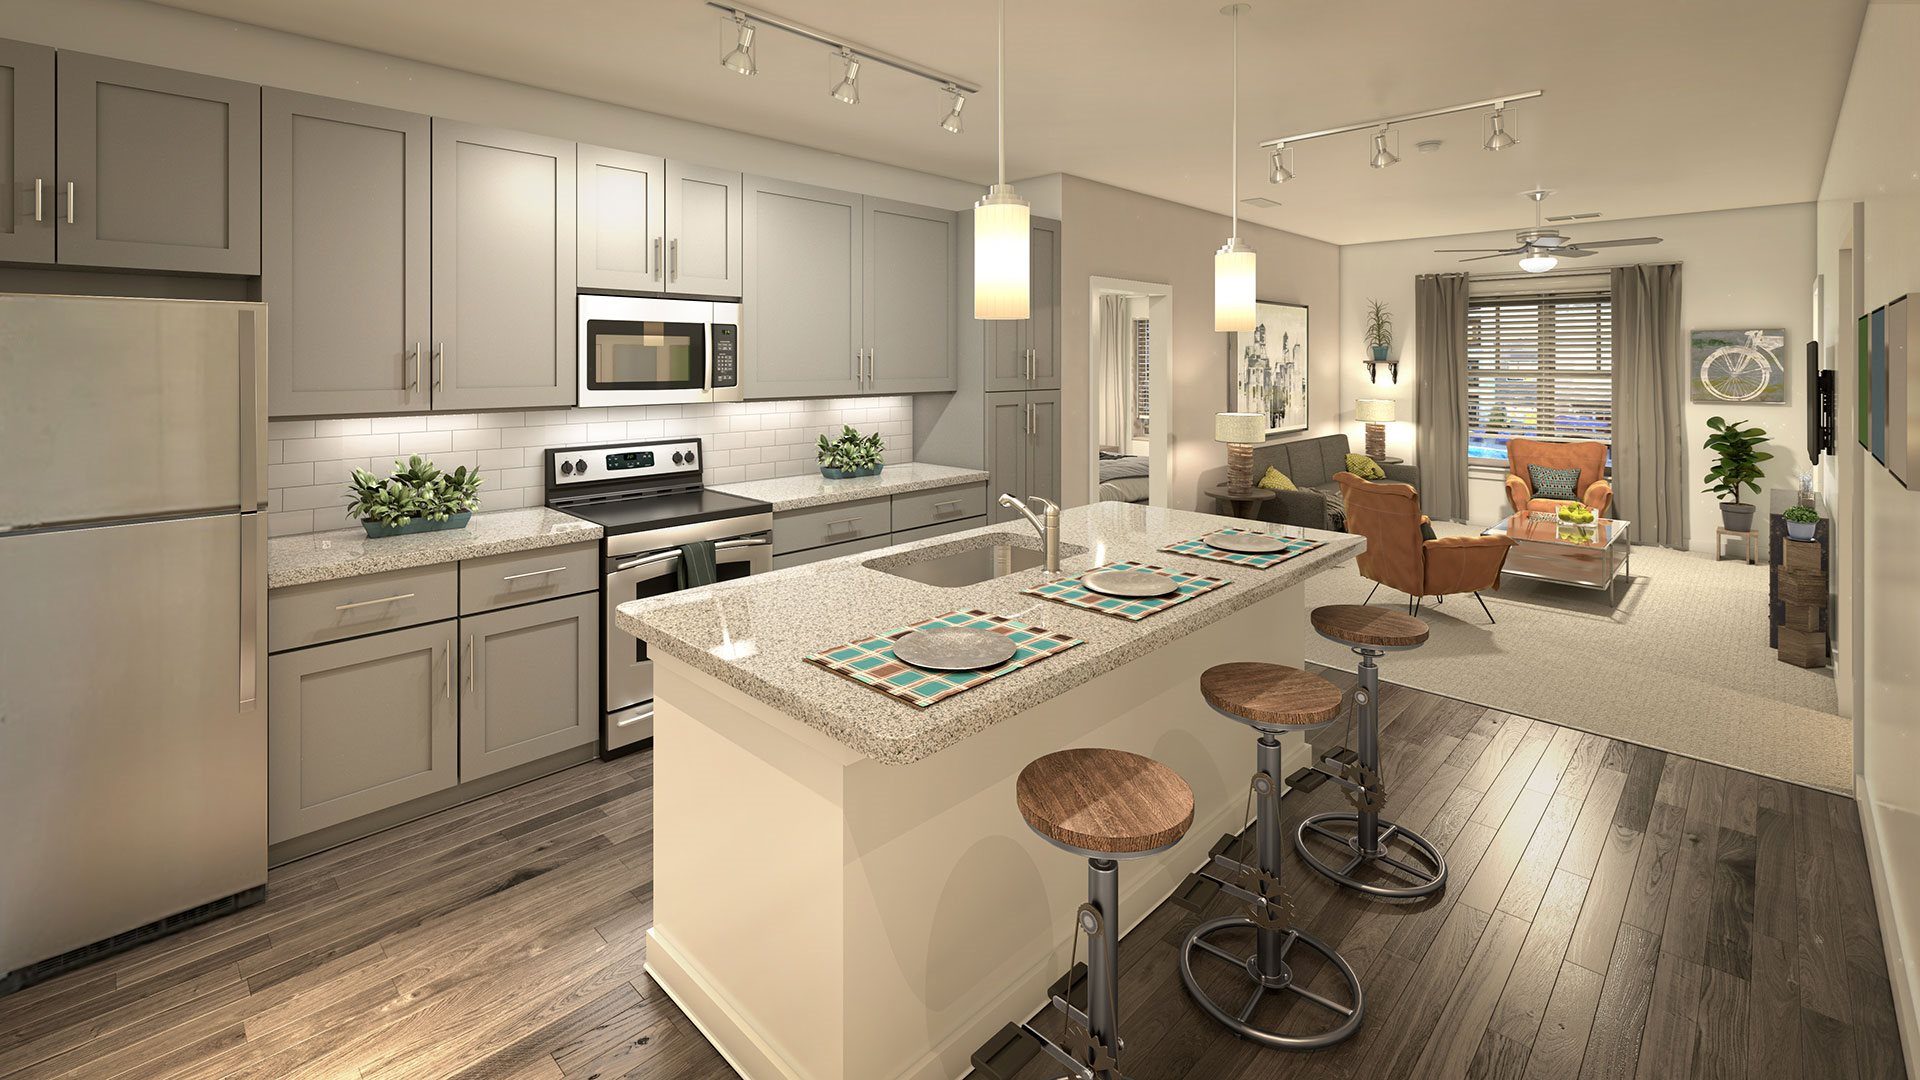 Fitted Kitchen With Island Dining at NorthPointe, South Carolina